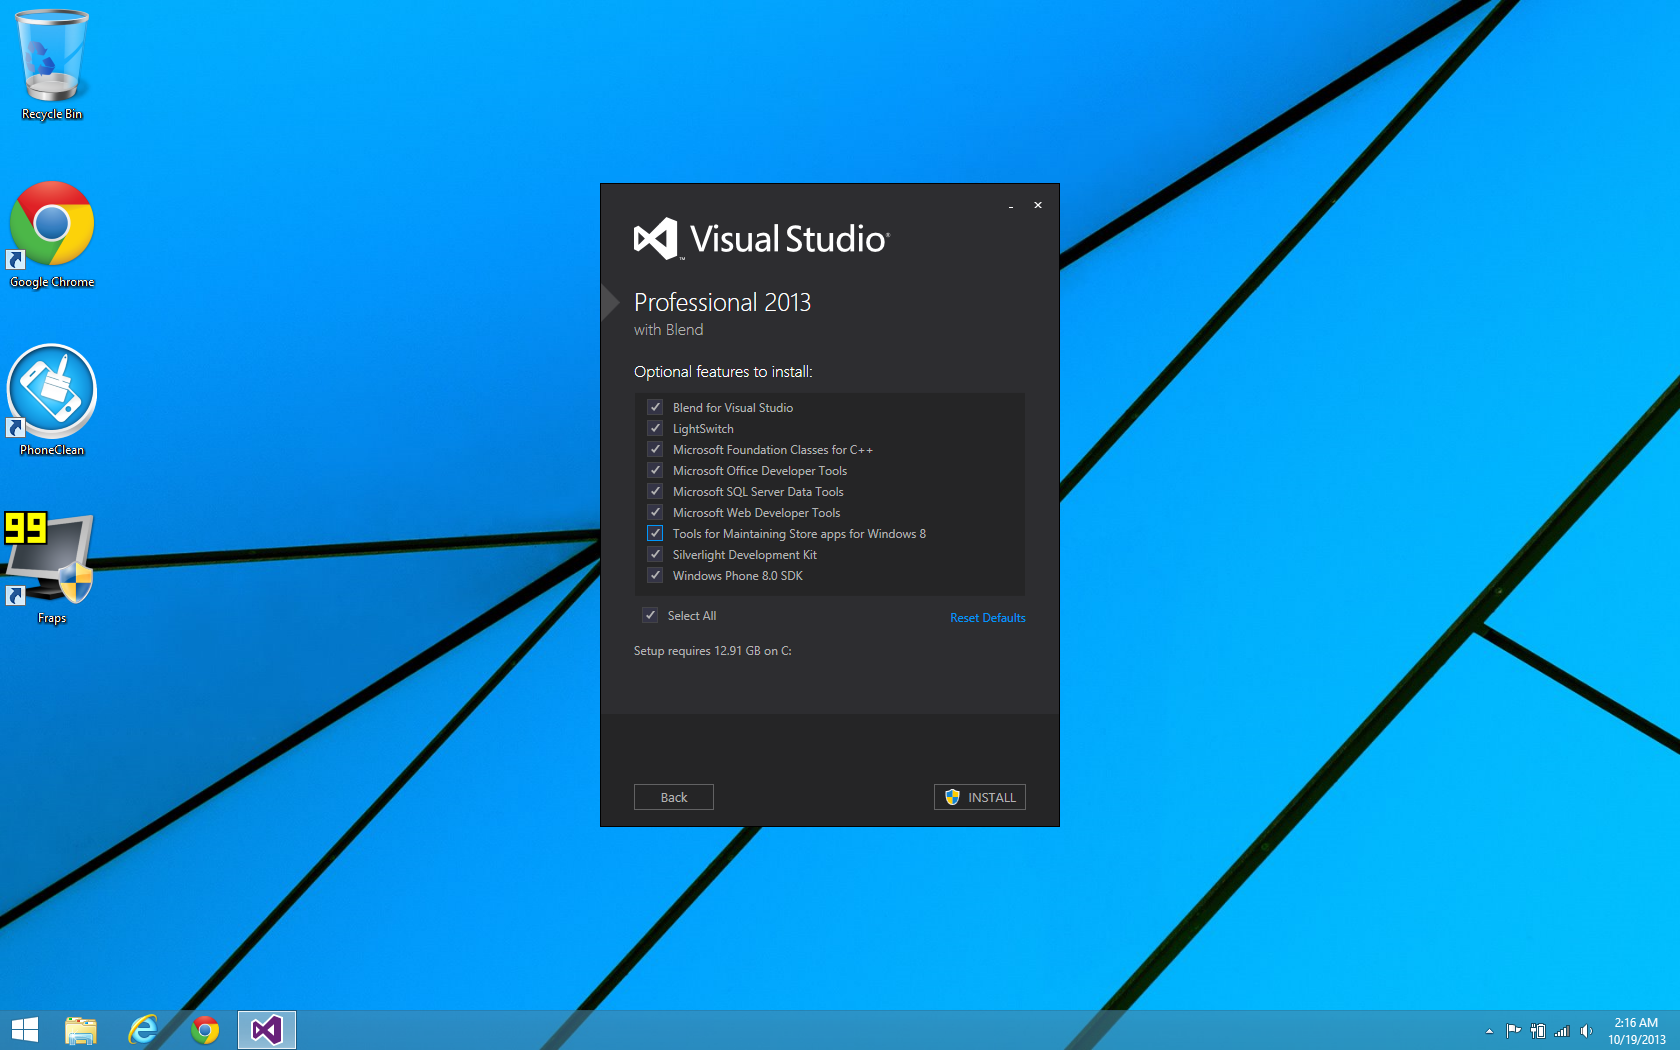 Visual Studio 2013 RTM Available for Dreamspark Users